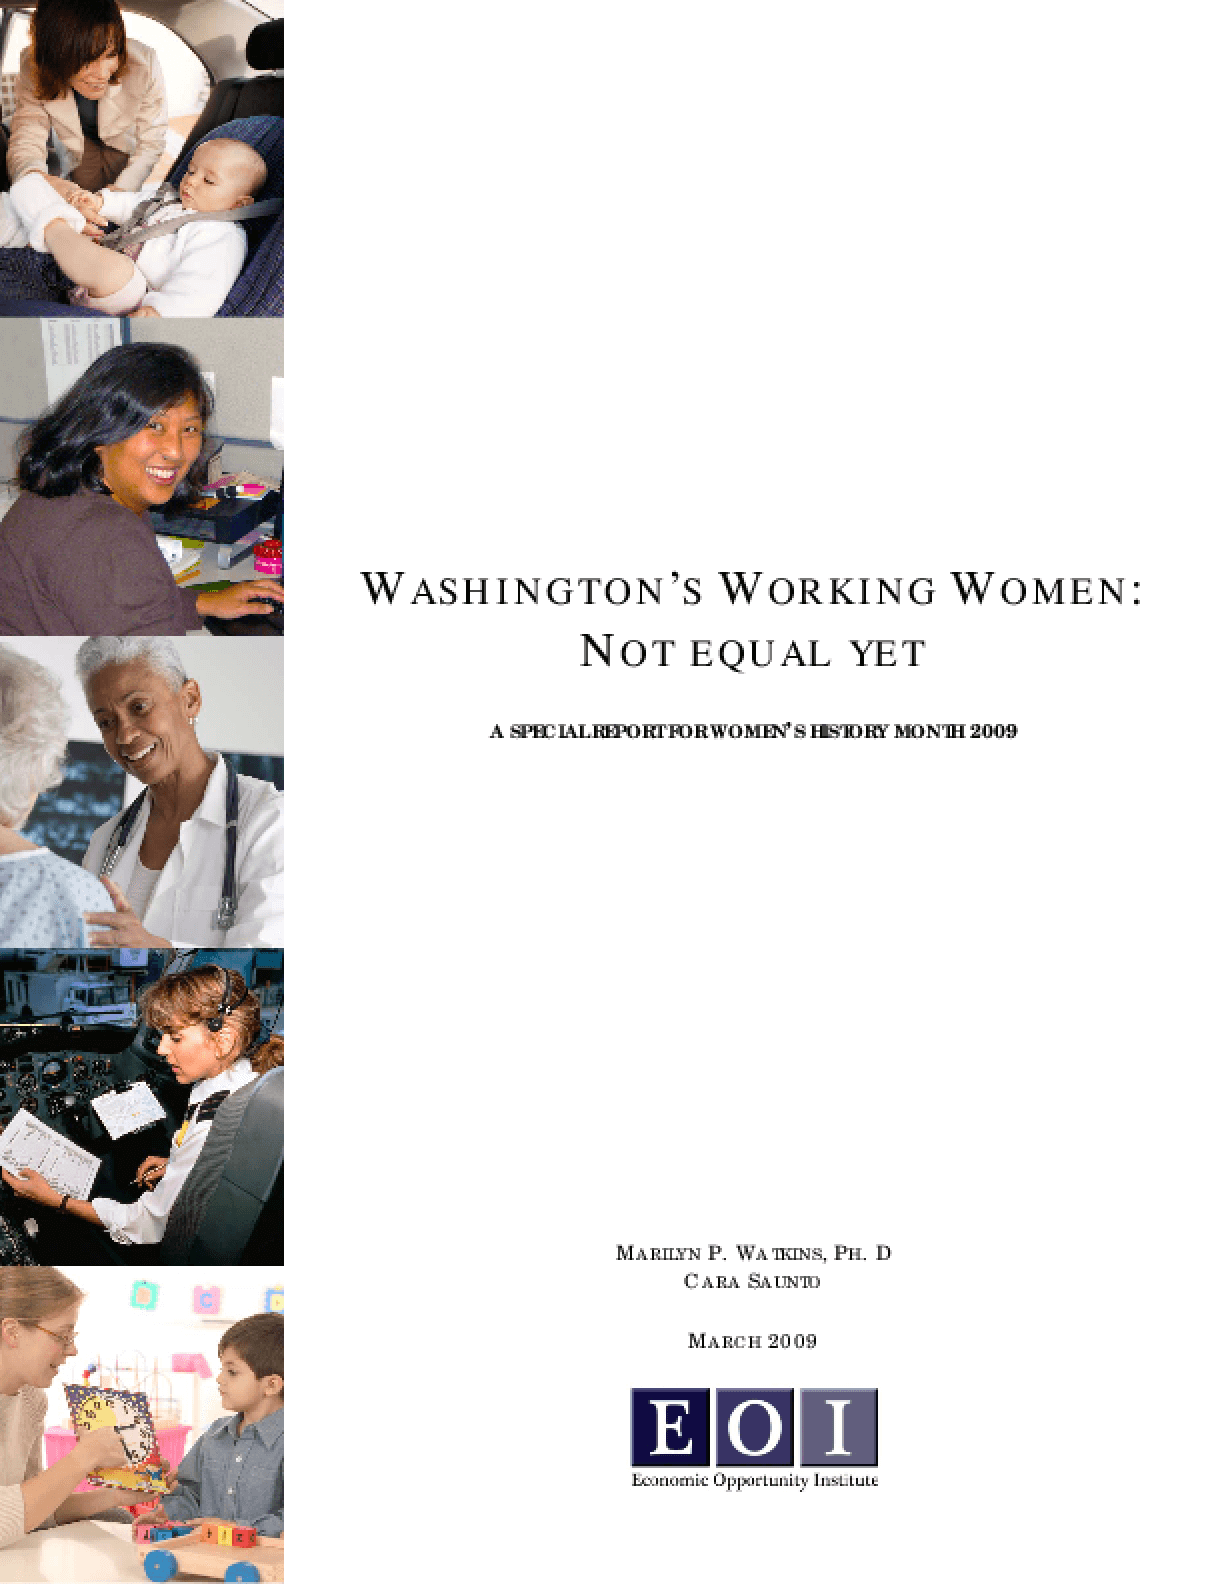 Washington's Working Women: Not Equal Yet